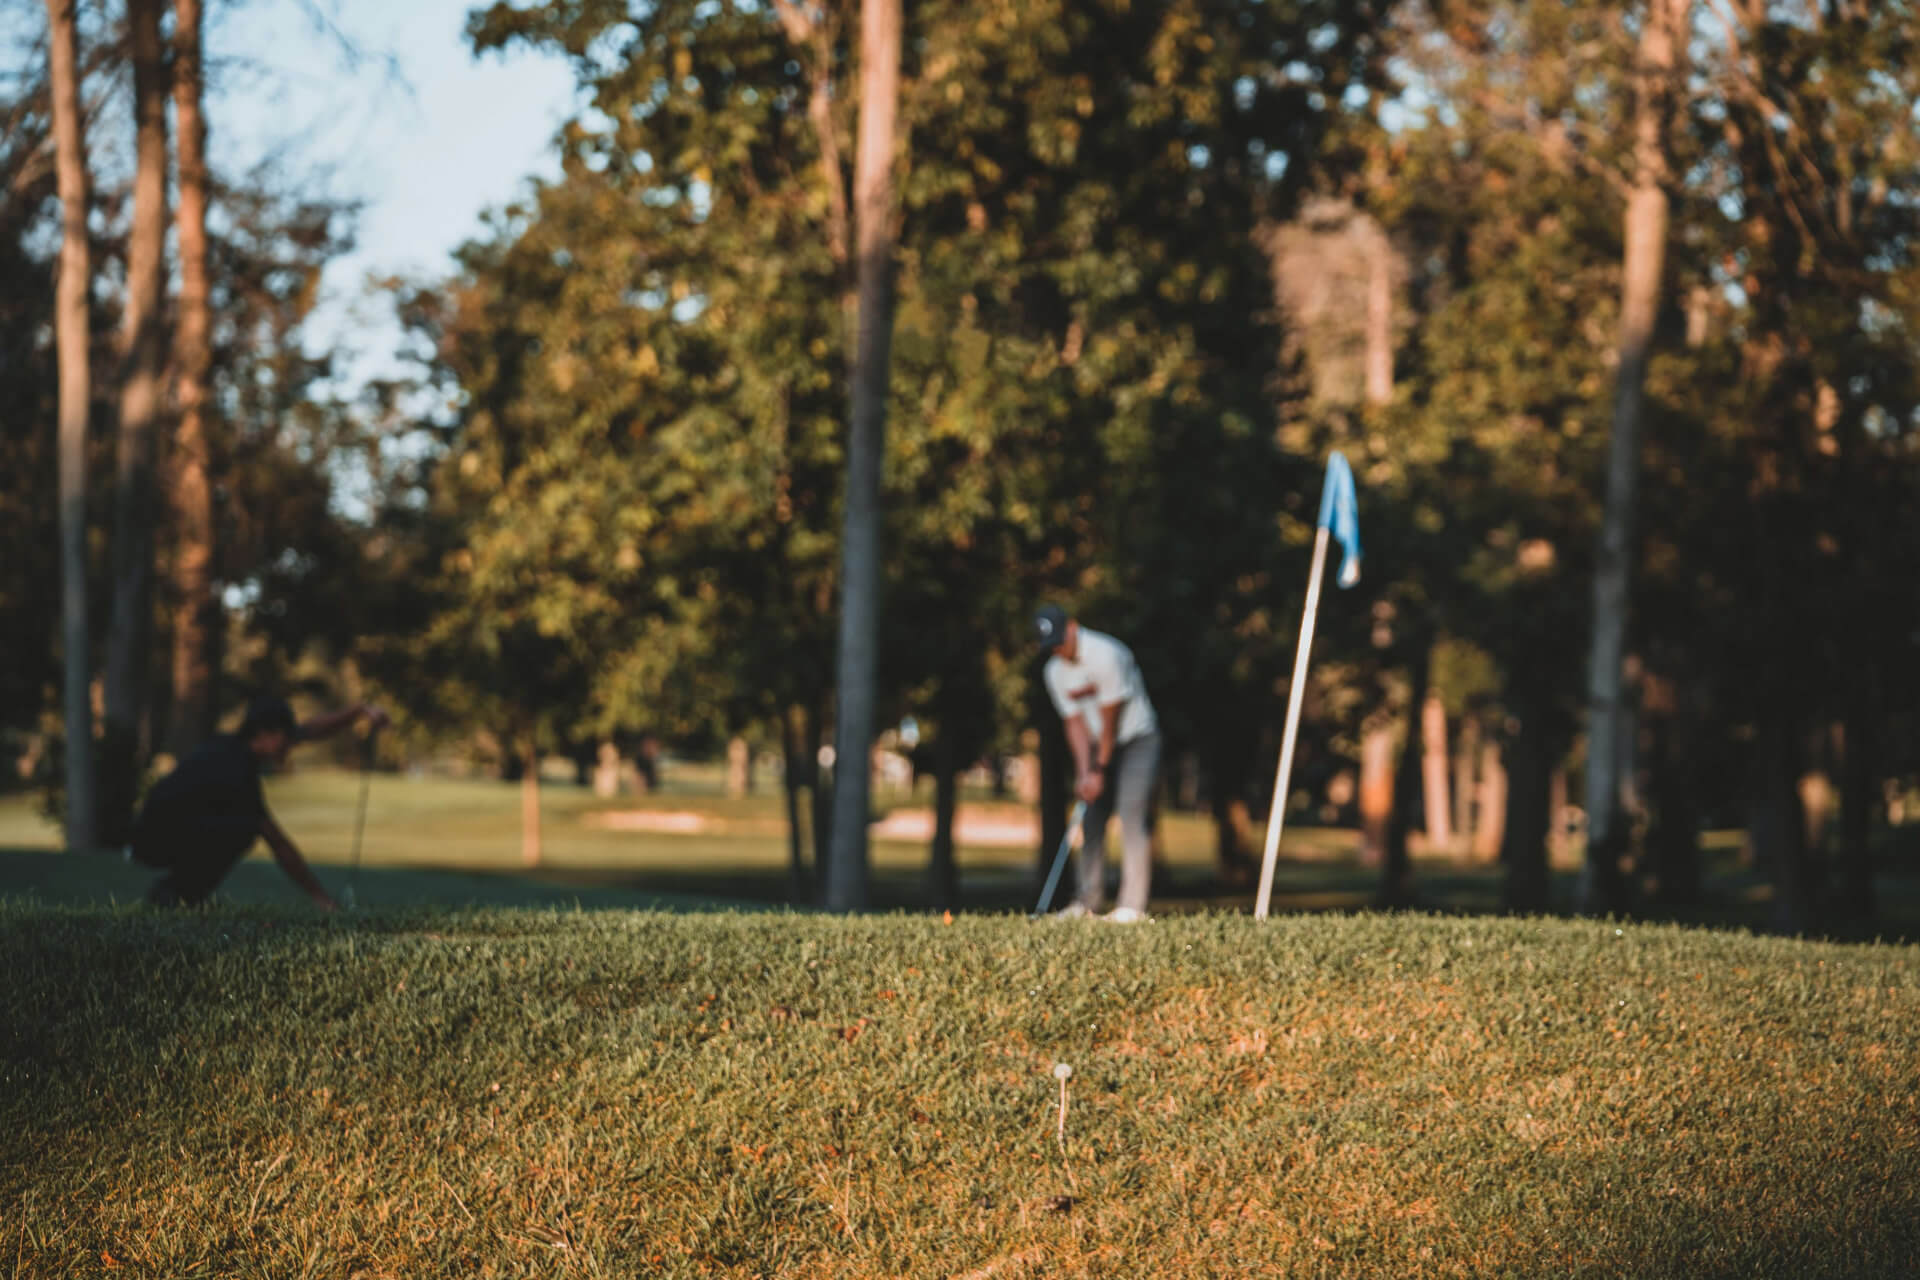 Golf is Seeing a Surge in Popularity and Profits During the Pandemic